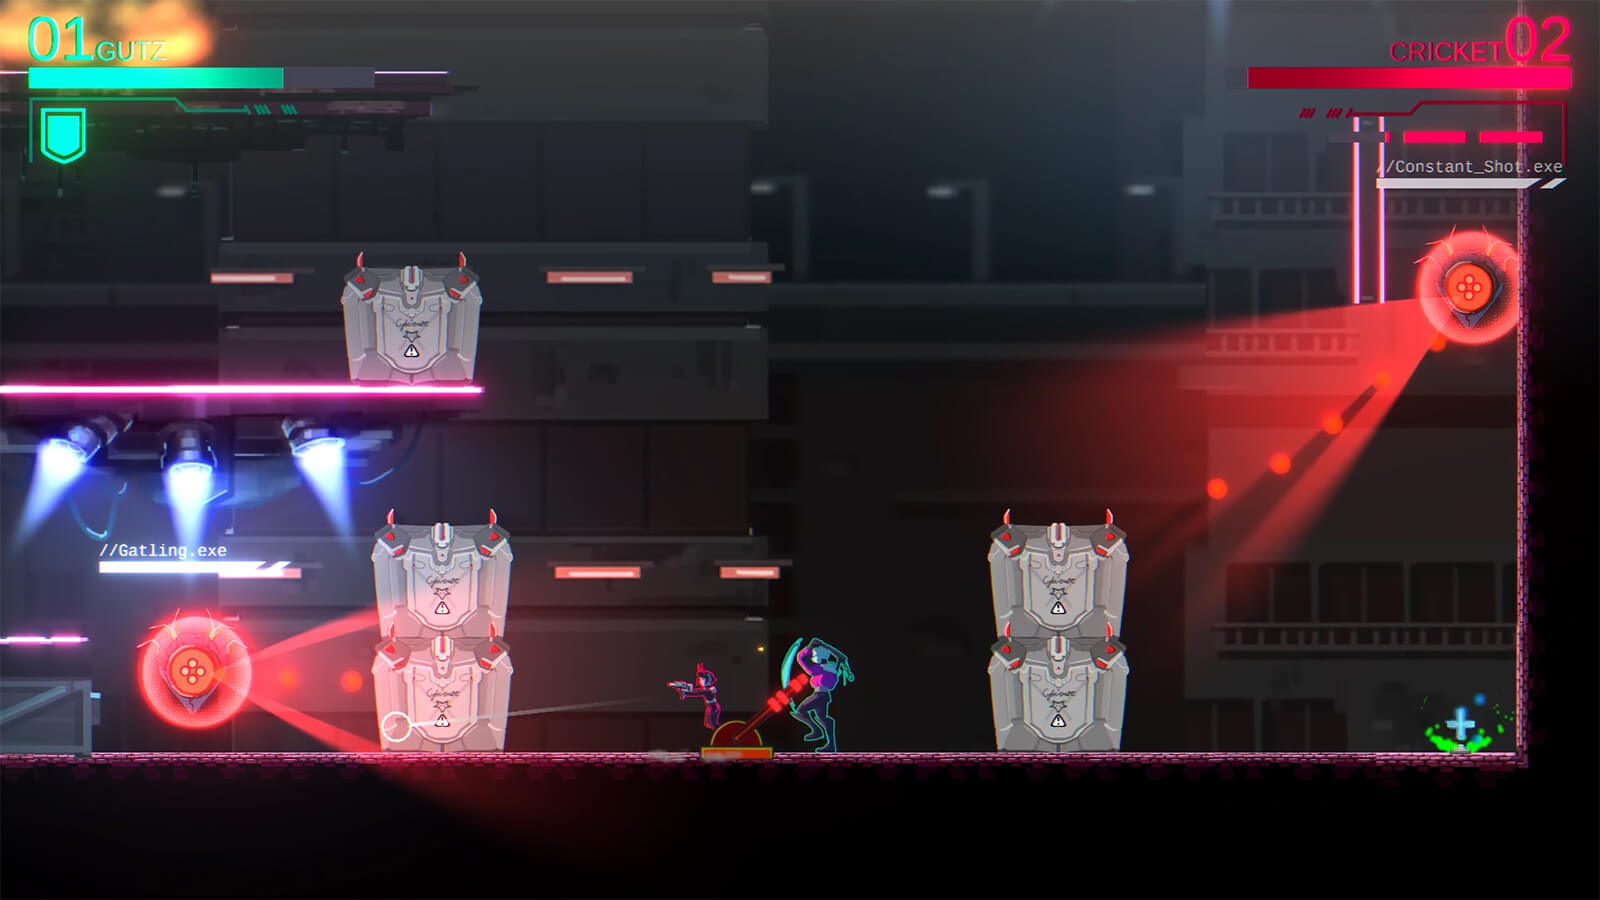 Two characters stand near a switch lever, surrounded by metal crates and pulse-firing enemy drones.